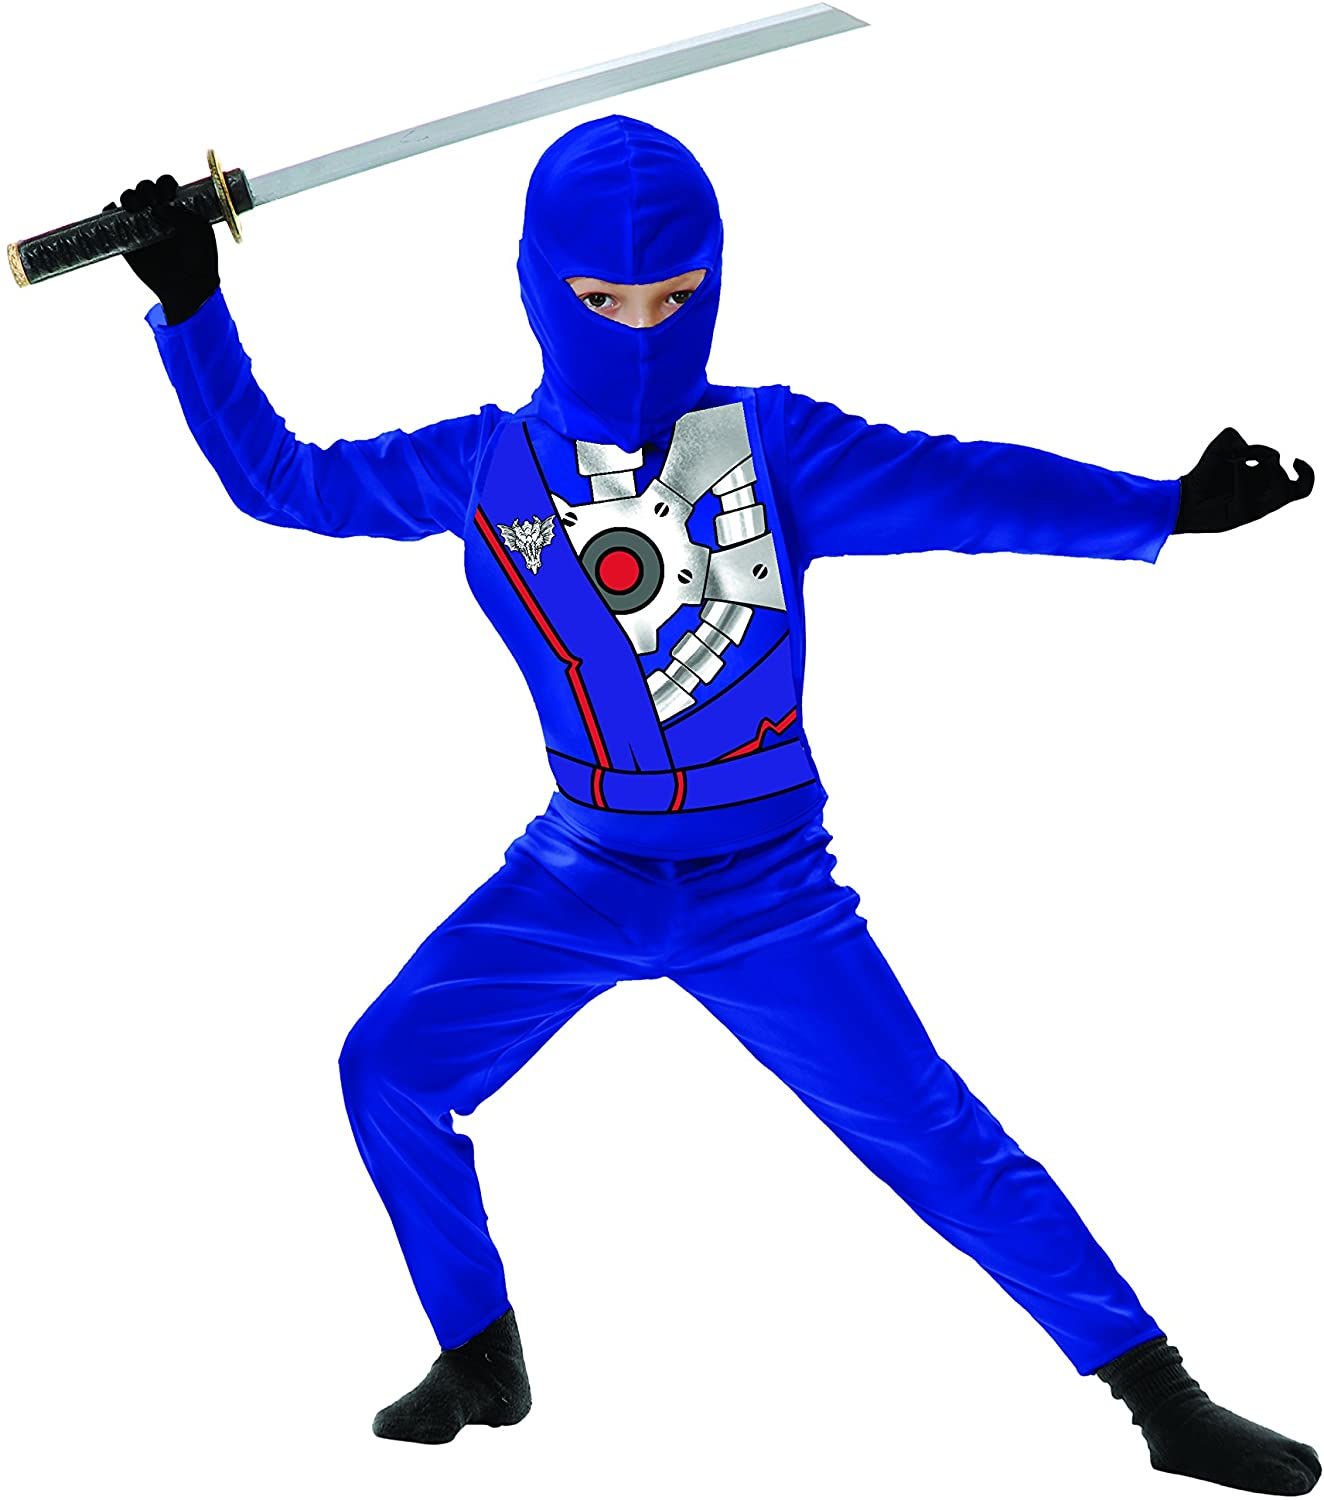 Charades Childs Ninja Avenger Series 4 Costume, Blue, X-Small